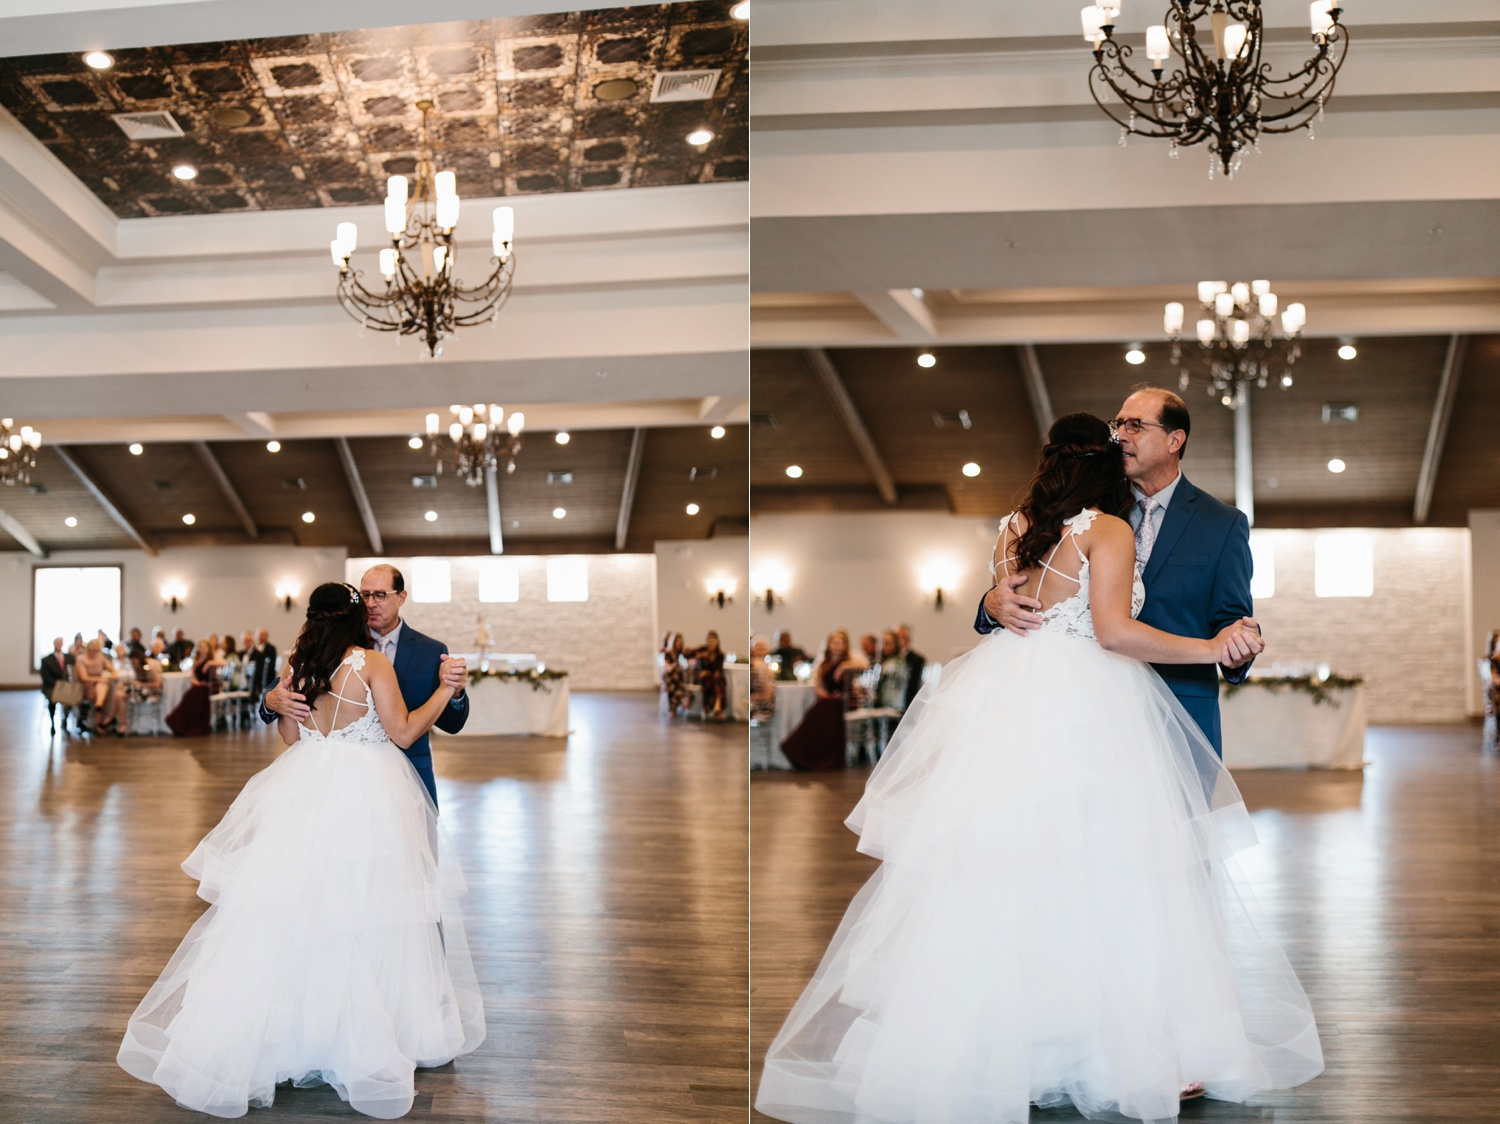 Grant + Lysette | a vibrant, deep burgundy and navy, and mixed metals wedding at Hidden Pines Chapel by North Texas Wedding Photographer Rachel Meagan Photography 138